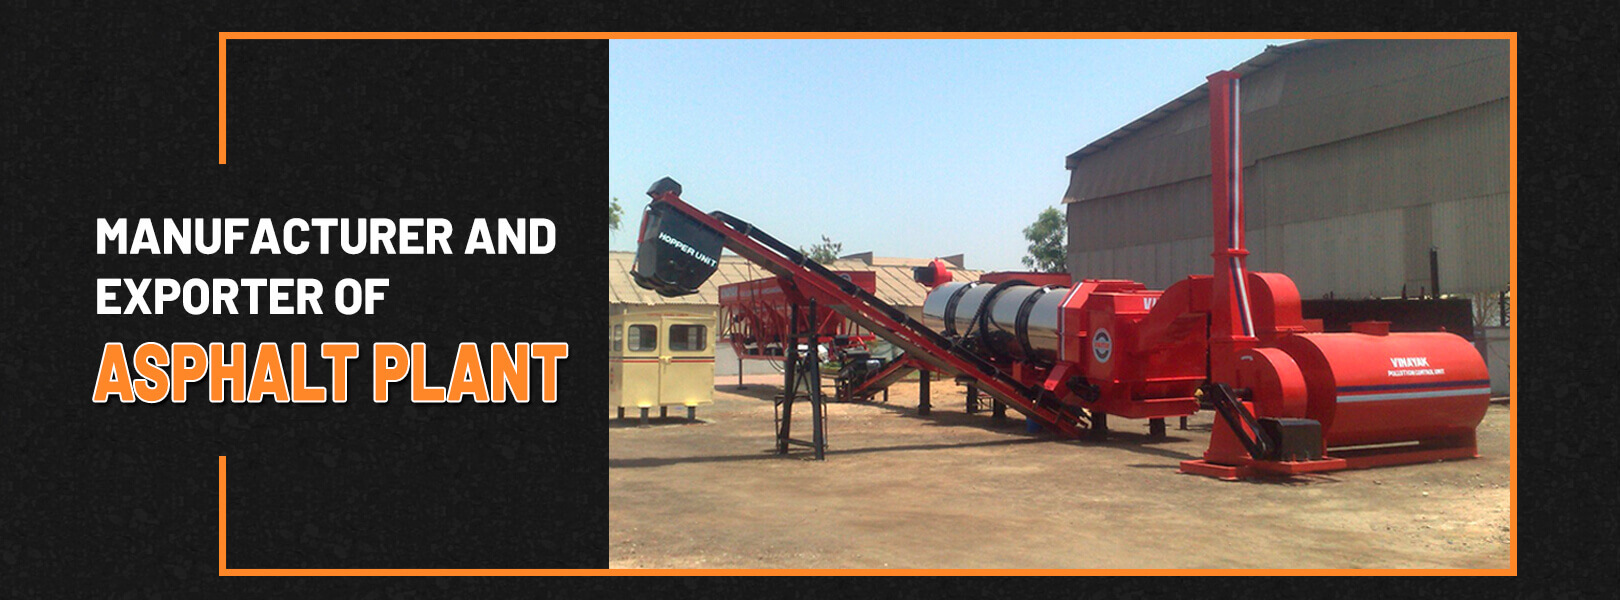 Manufacturer and Exporter of Asphalt plant in Idonesia, Slovenia, Uzbekistan, Lithuania